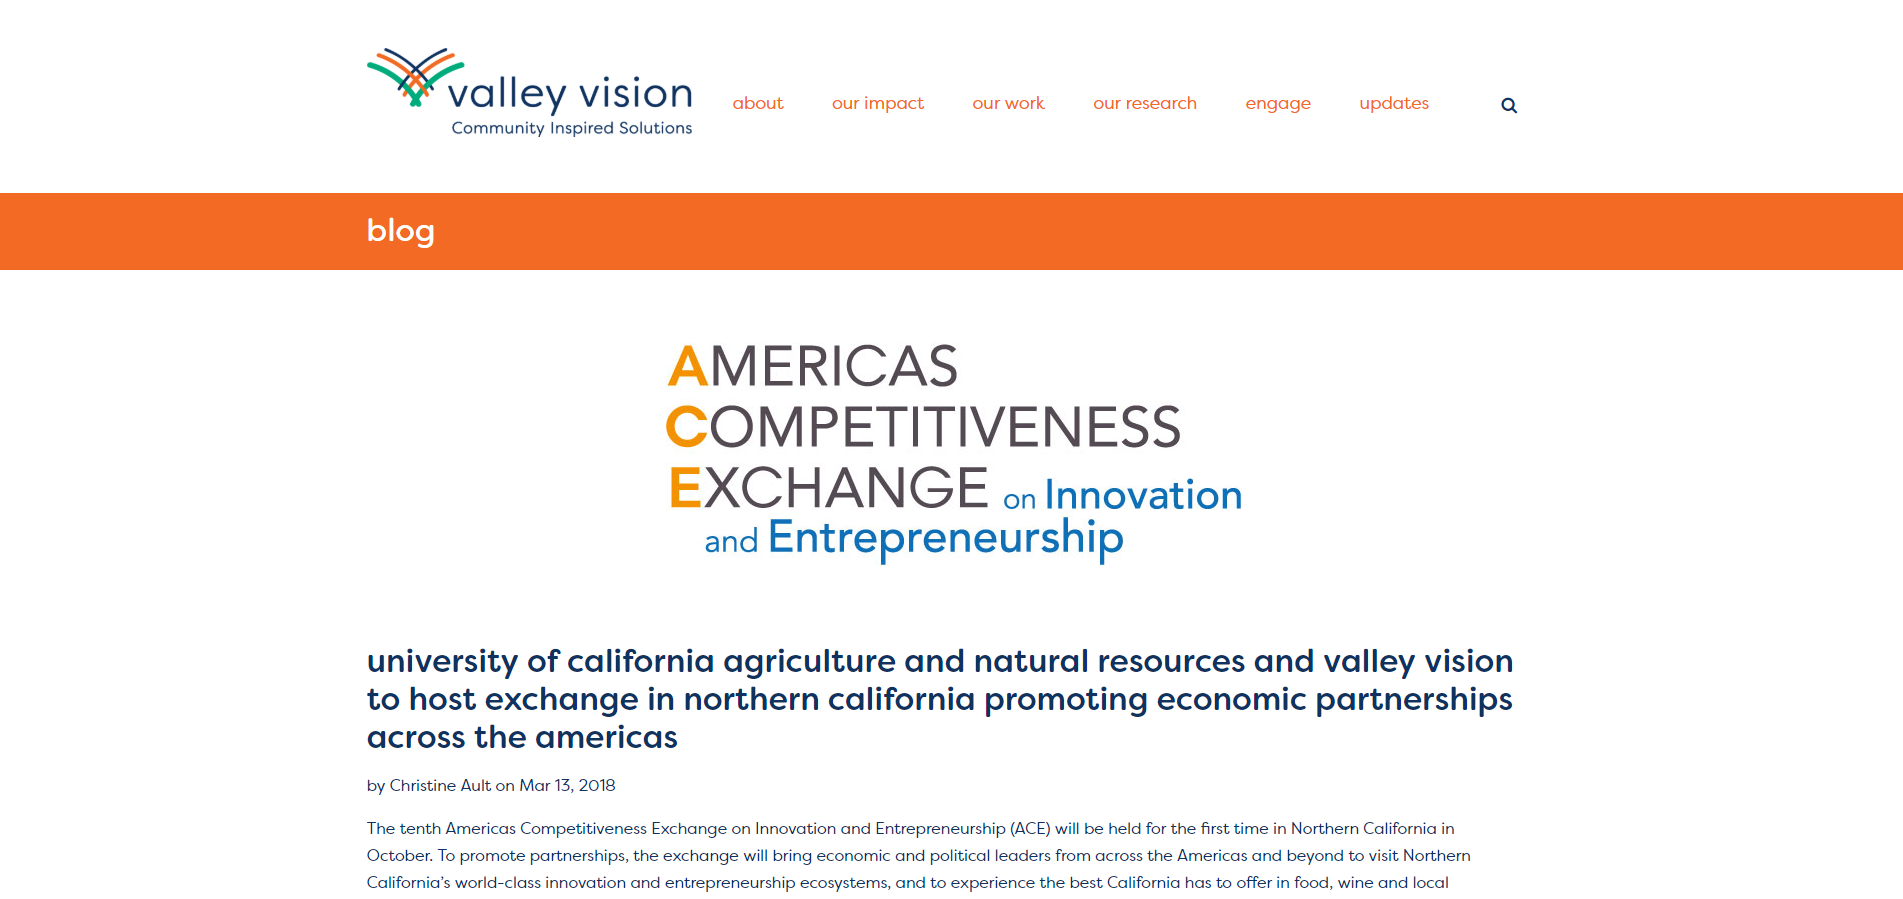 University of California Agriculture and Natural Resources and Valley Vision to host exchange in Northern California promoting economic partnerships across the Americas